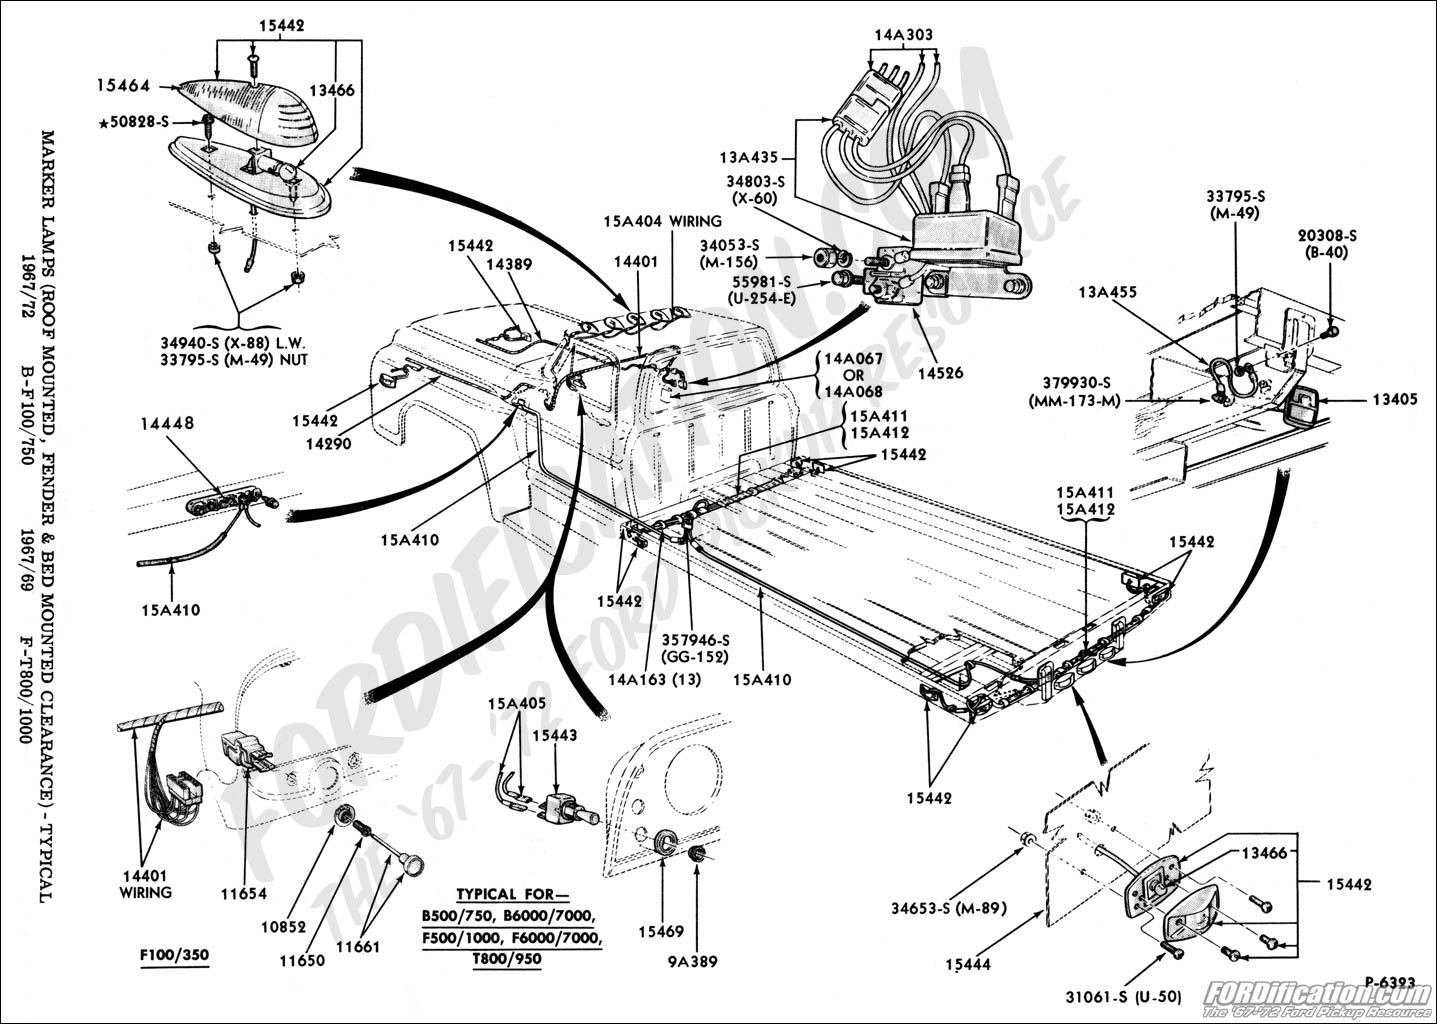 87 ford f 350 wiring diagram with 1427778 Cab Cleareance Lights on 89 Chevy Alternator Wiring Diagram in addition 7k1ps Ford Transit Color Dome Light Wire Transit furthermore Schematics c also 1427778 Cab Cleareance Lights also 5fa1f9a75fa7418cf892bac60698f961.